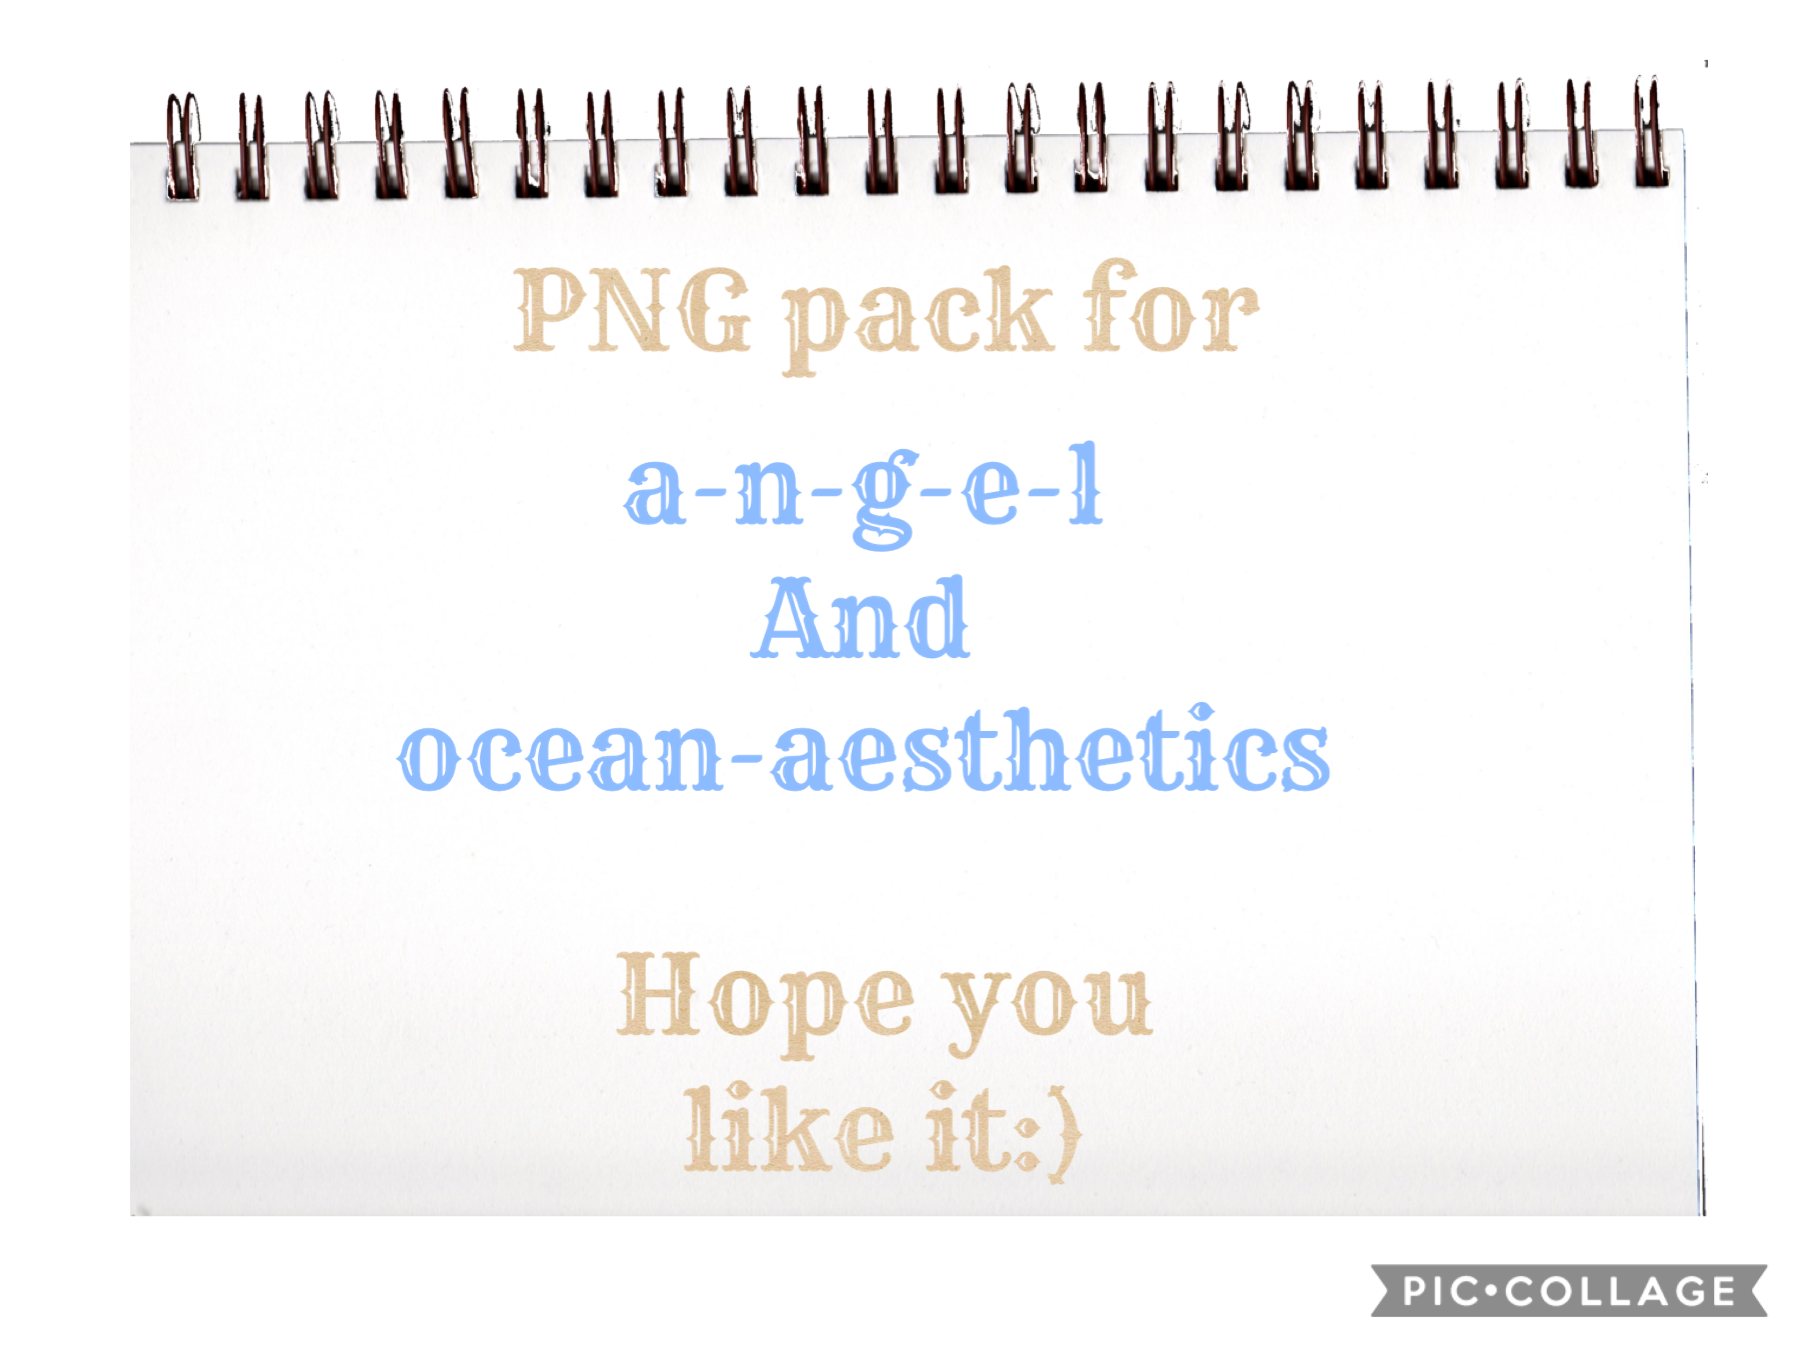 PNG pack for angel and ocean-aesthetics hope you guys like it!